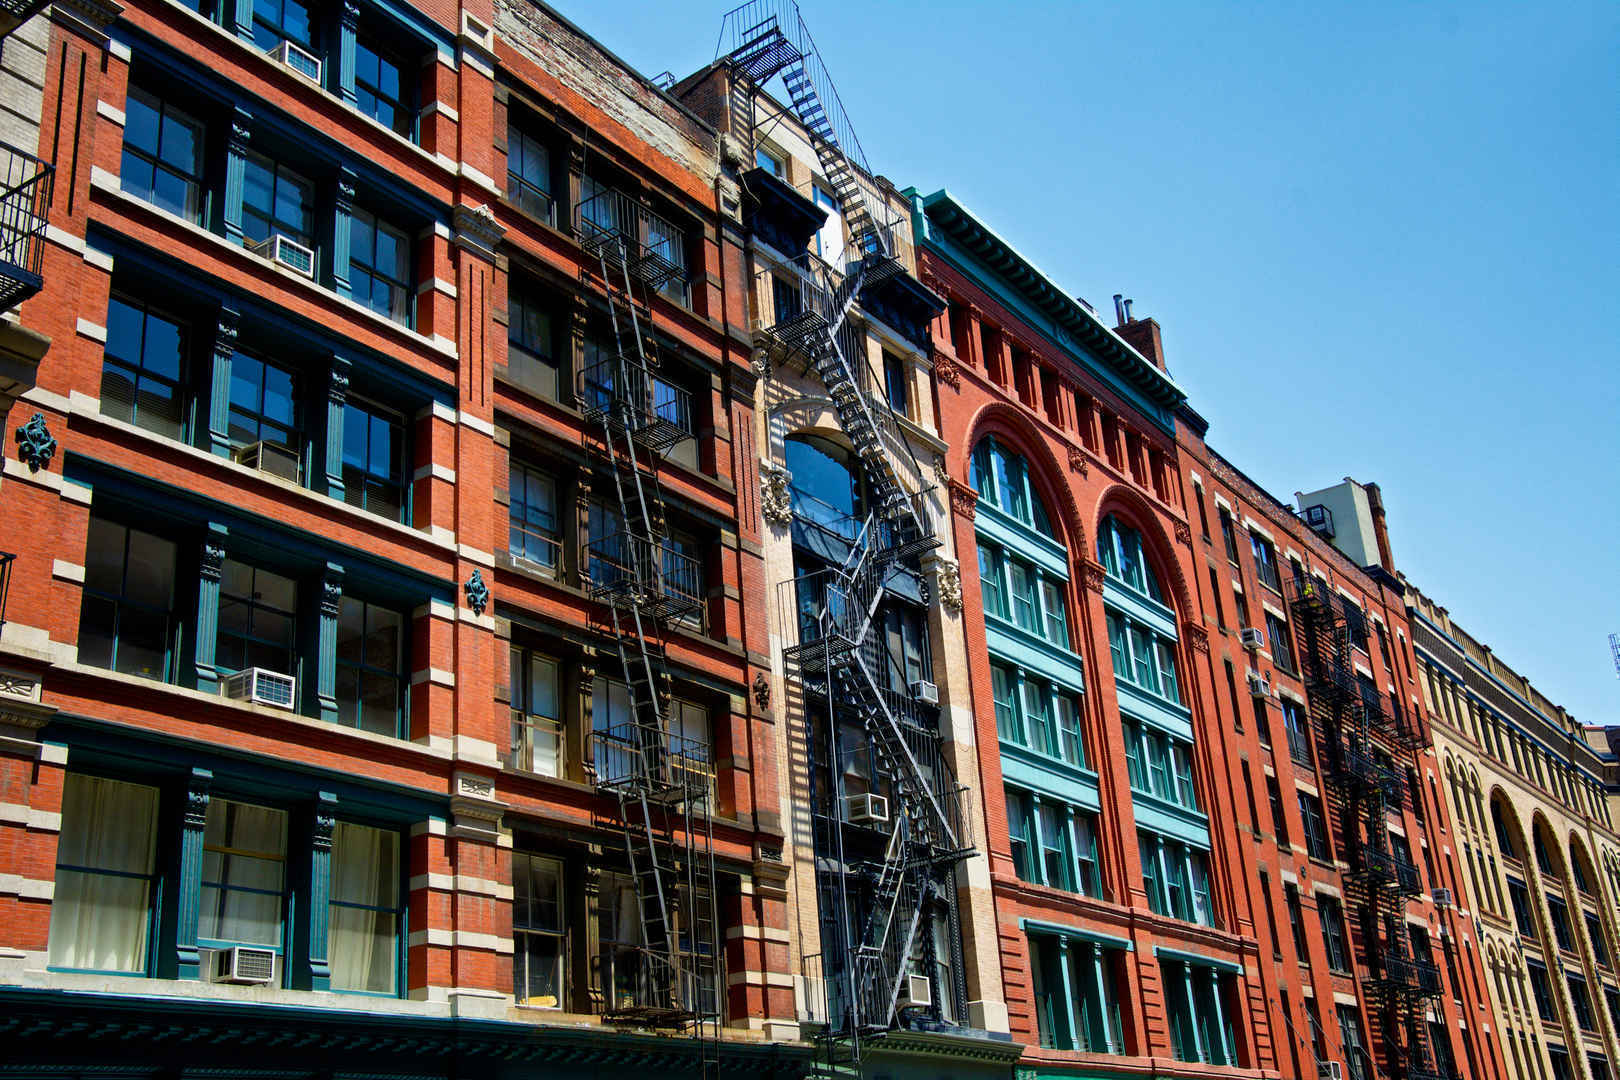 Architecture and cityscape, Tribeca, New York